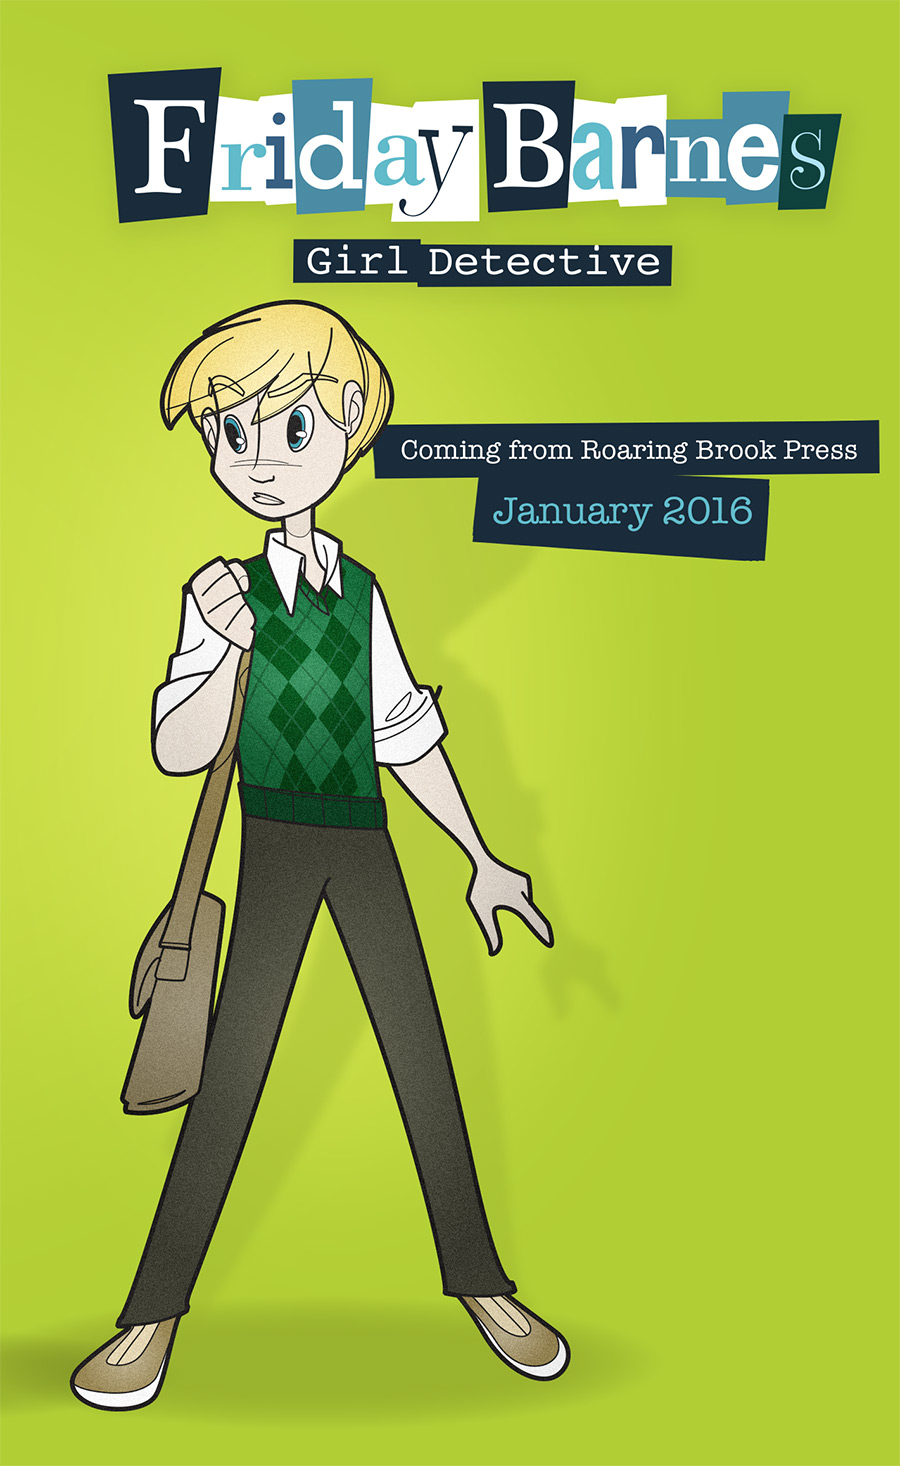 S Book About A Kid Detective